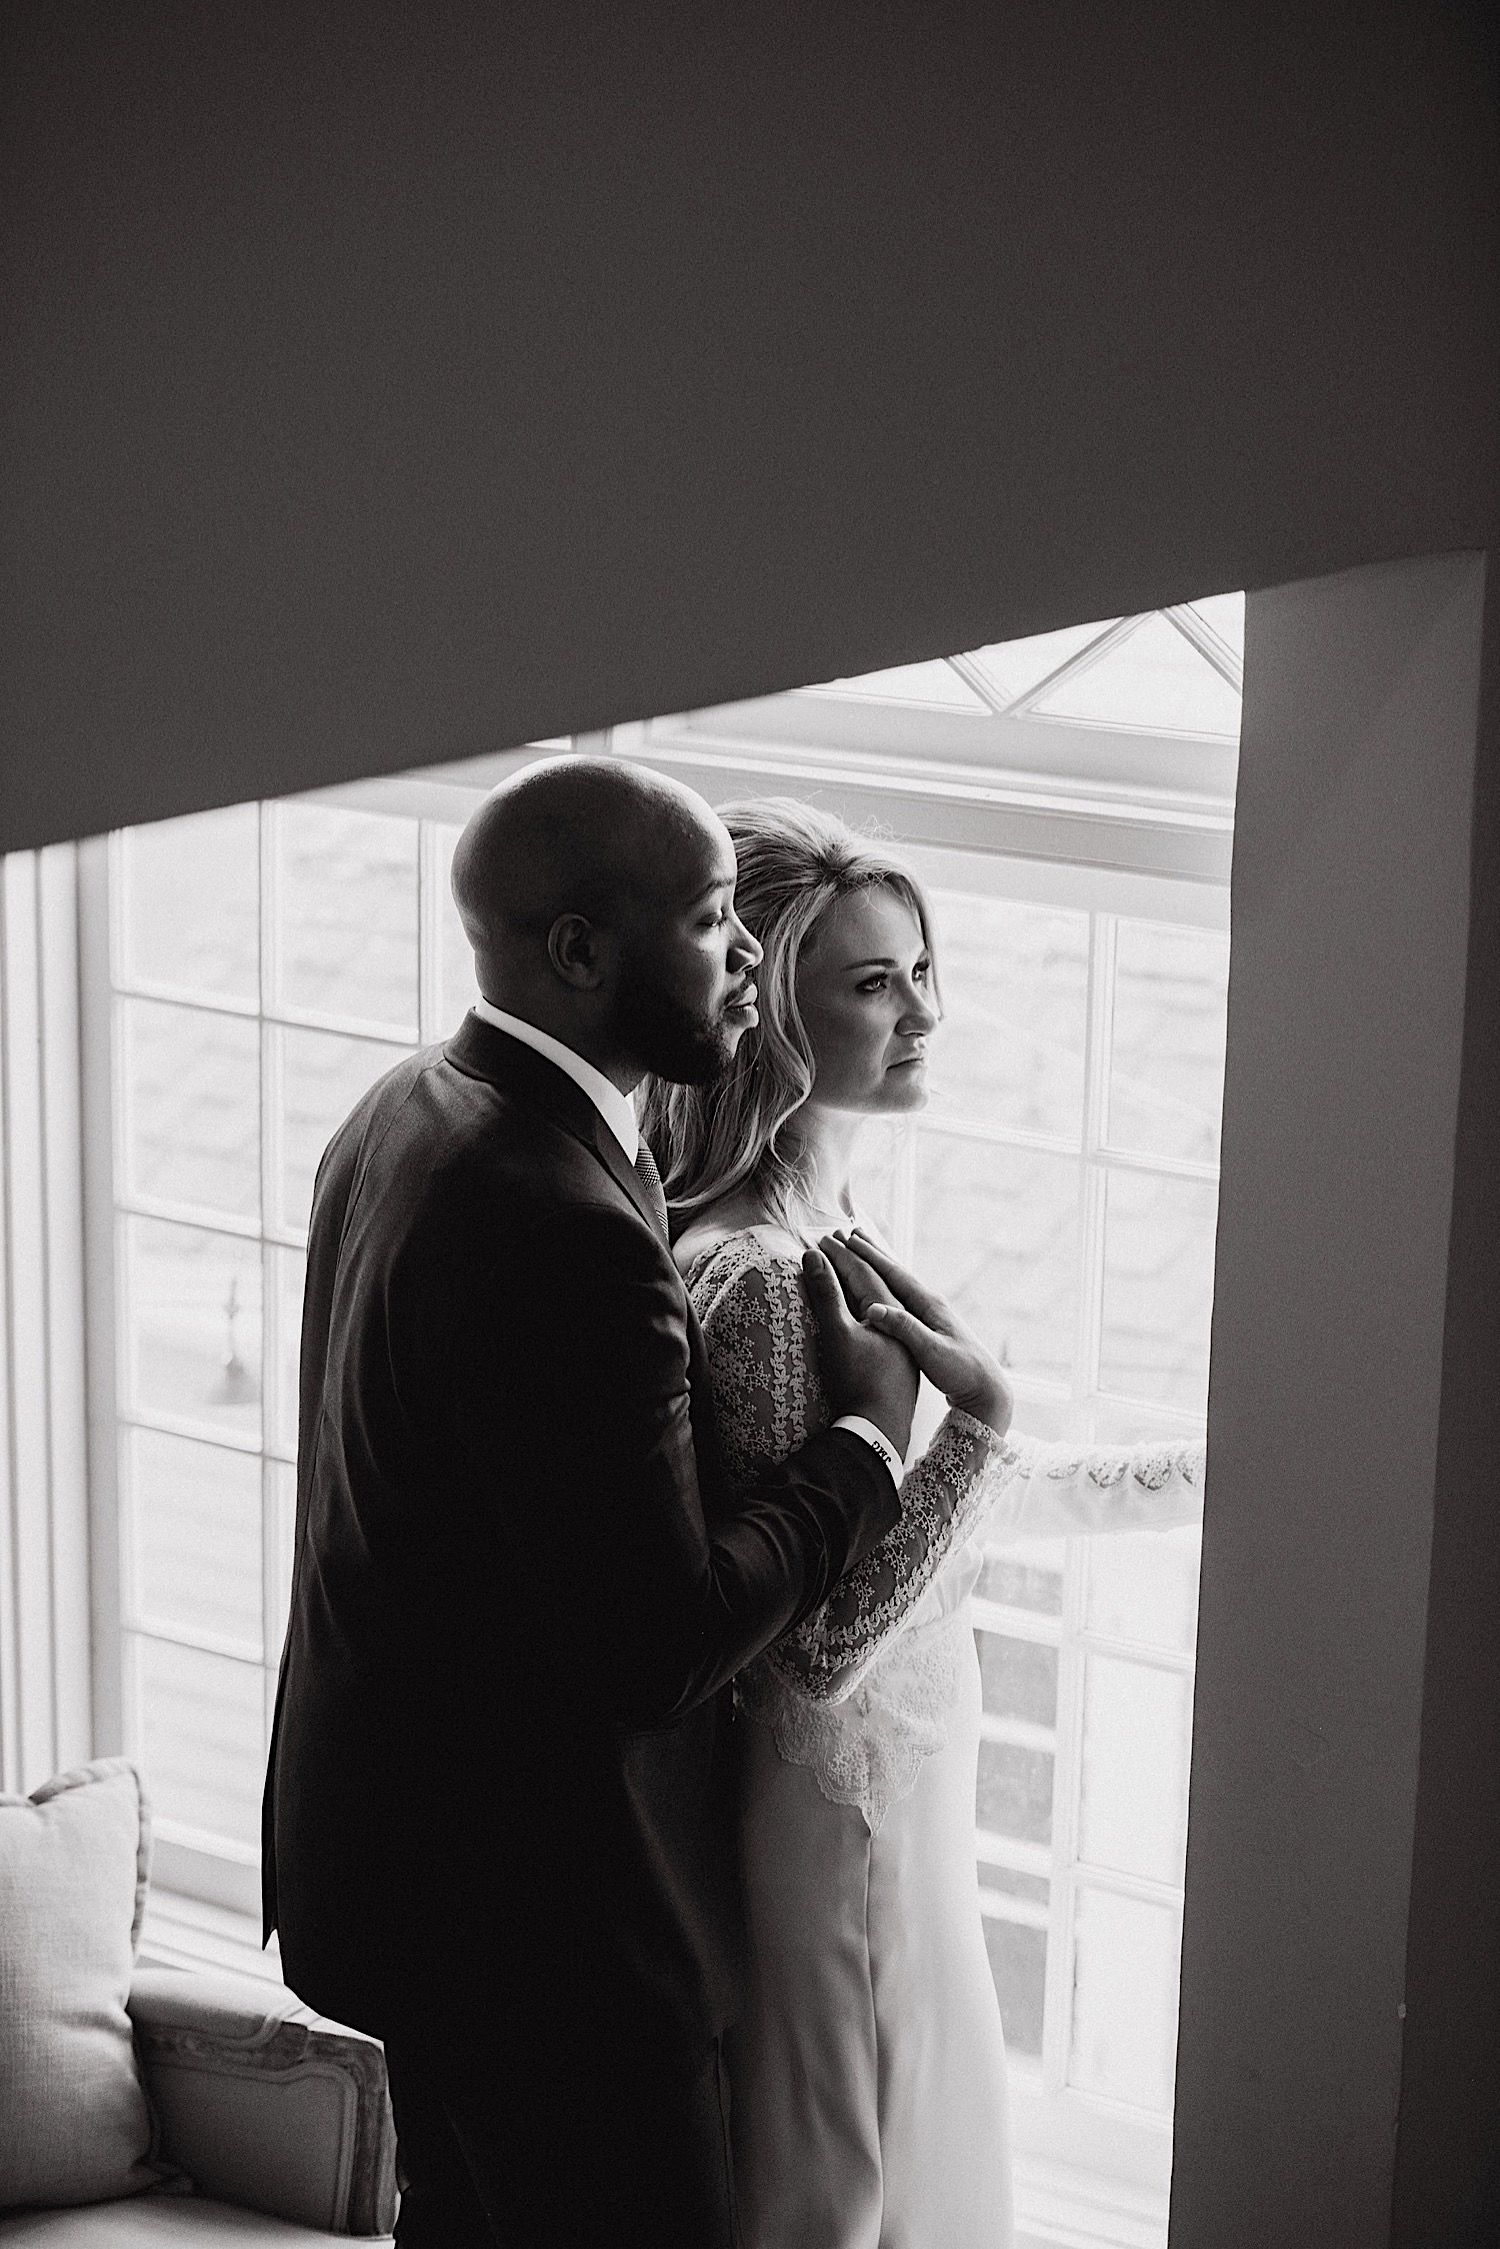 bride and groom looking out the window together